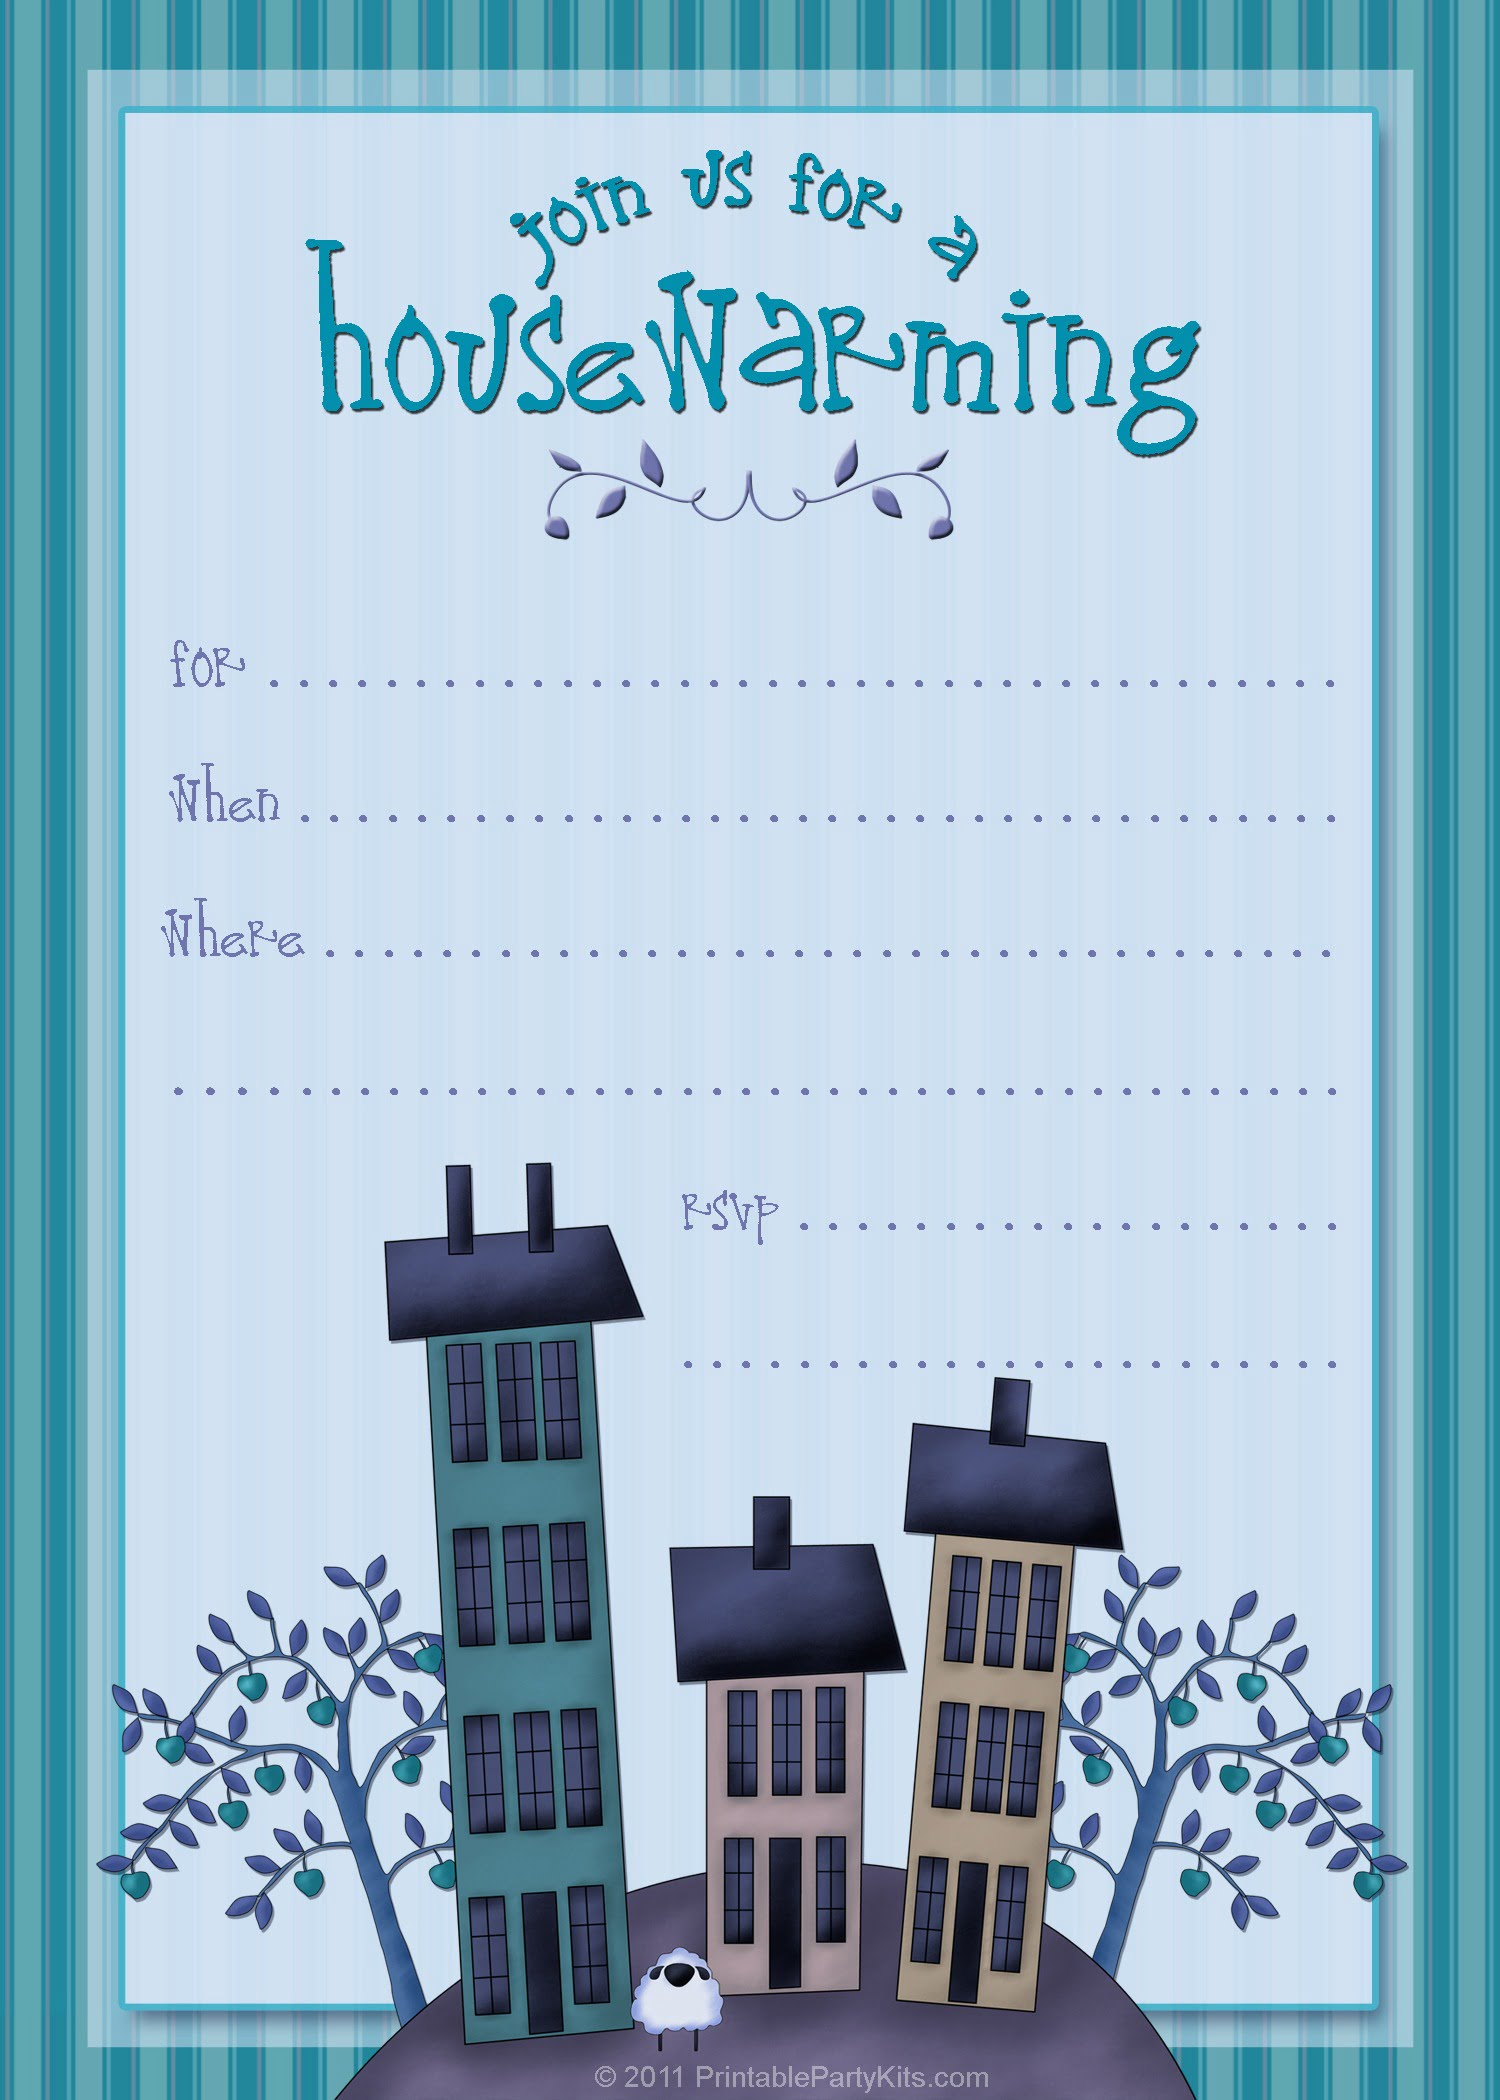 Free Housewarming Invitations To Inspire You On How To Make Your